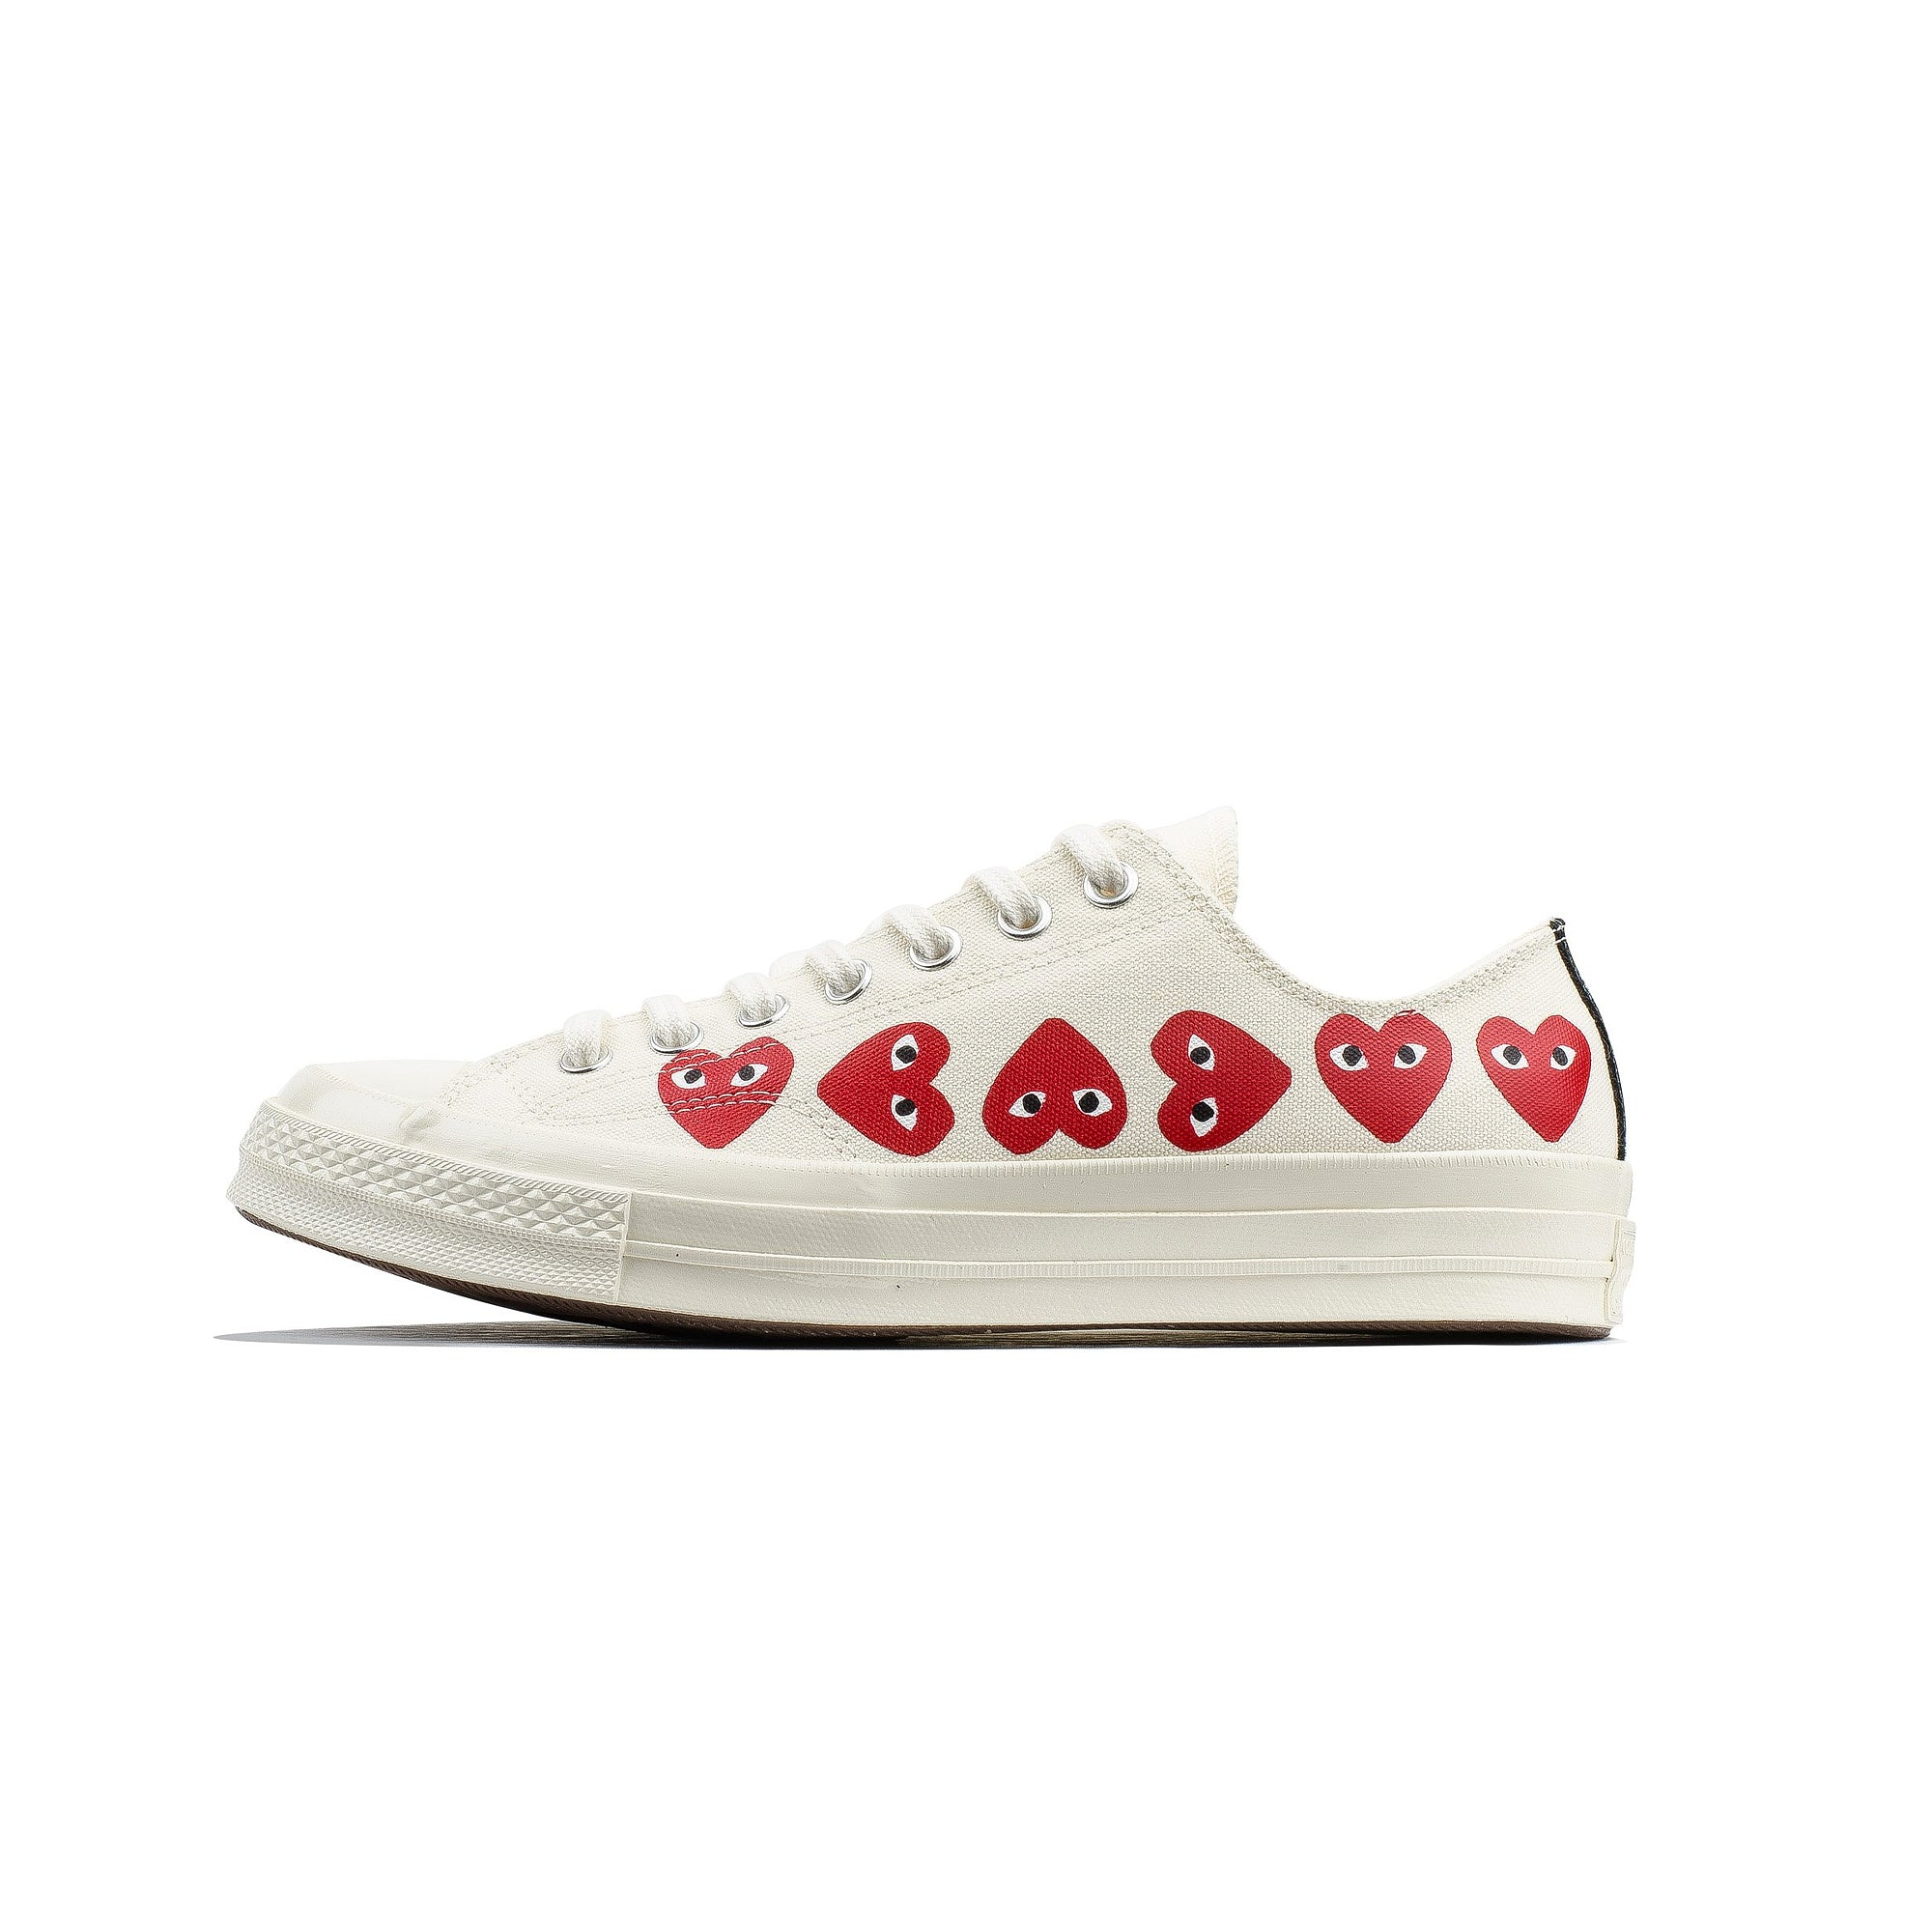 6cb904f99b15 Comme des Garcons PLAY x Converse Chuck 70 Low Multi Heart  162975C